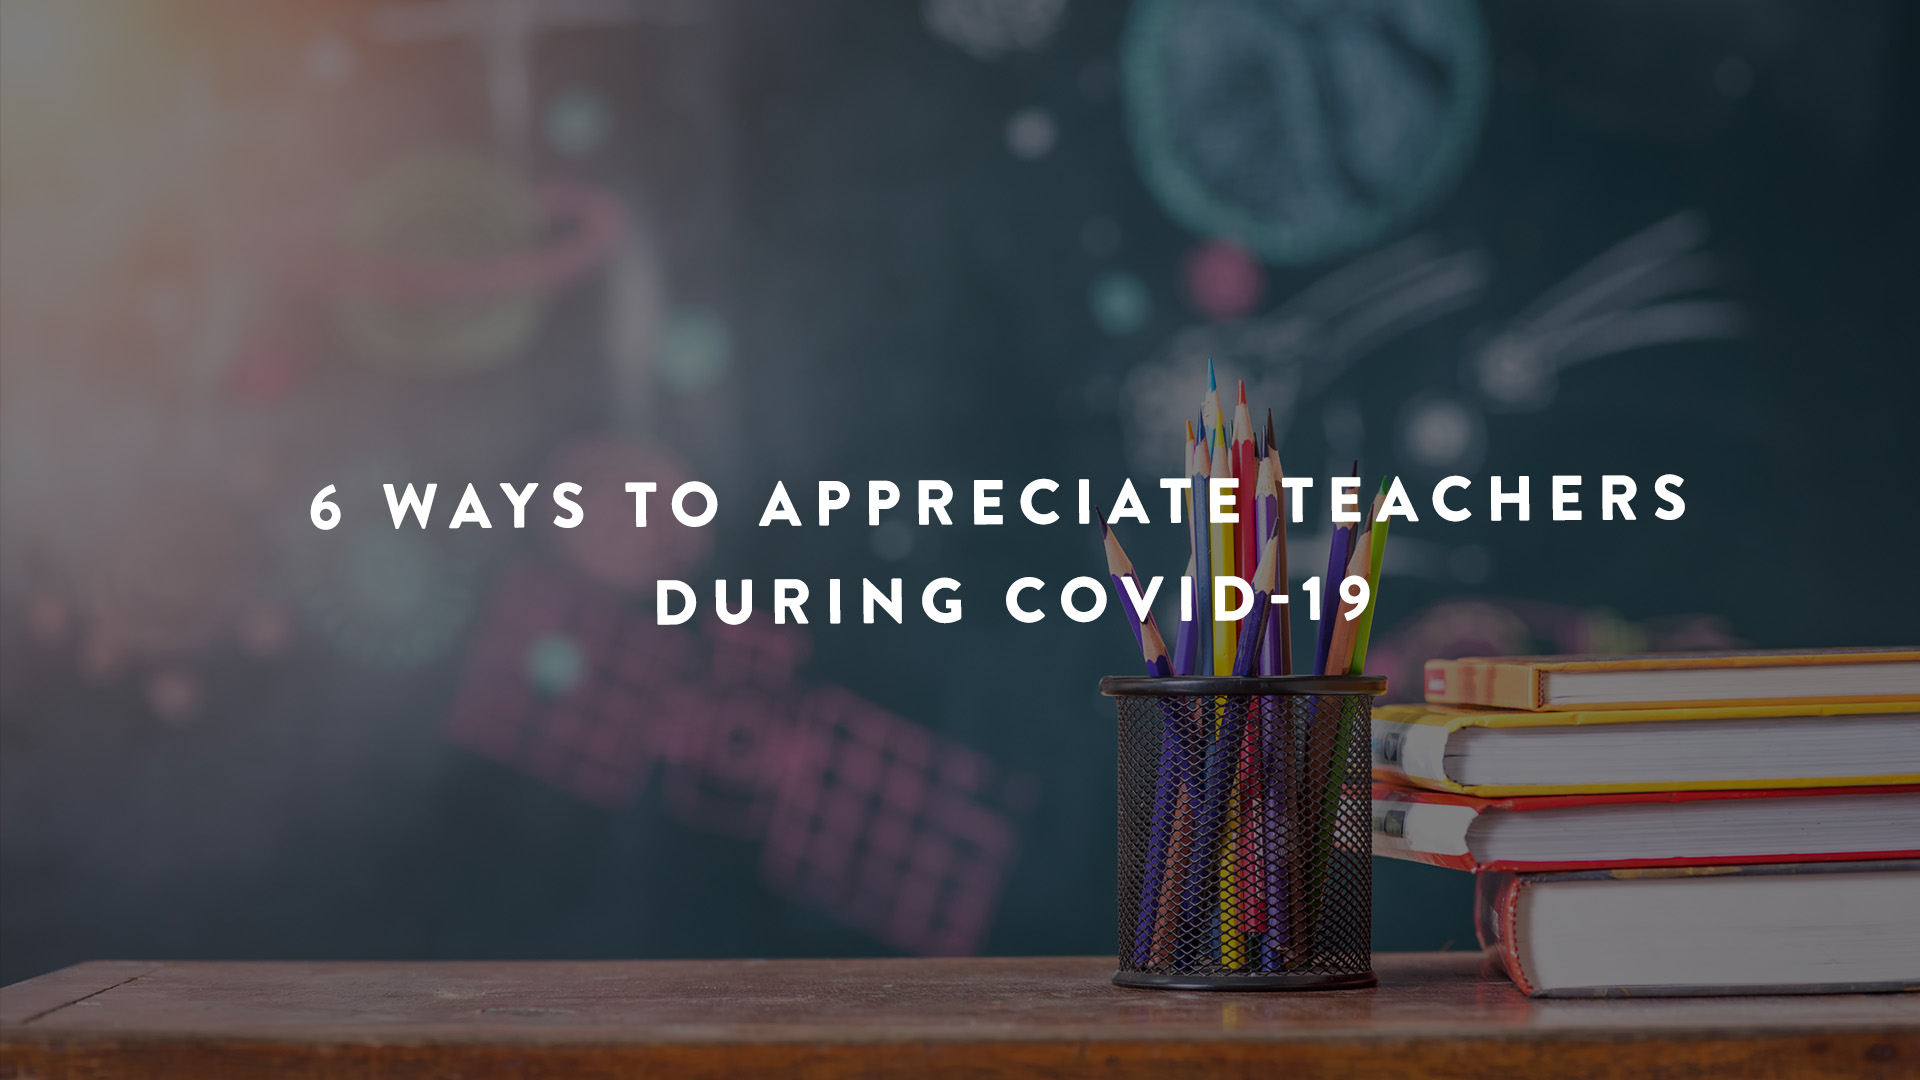 6 ways to appreciate teachers during Covid-19